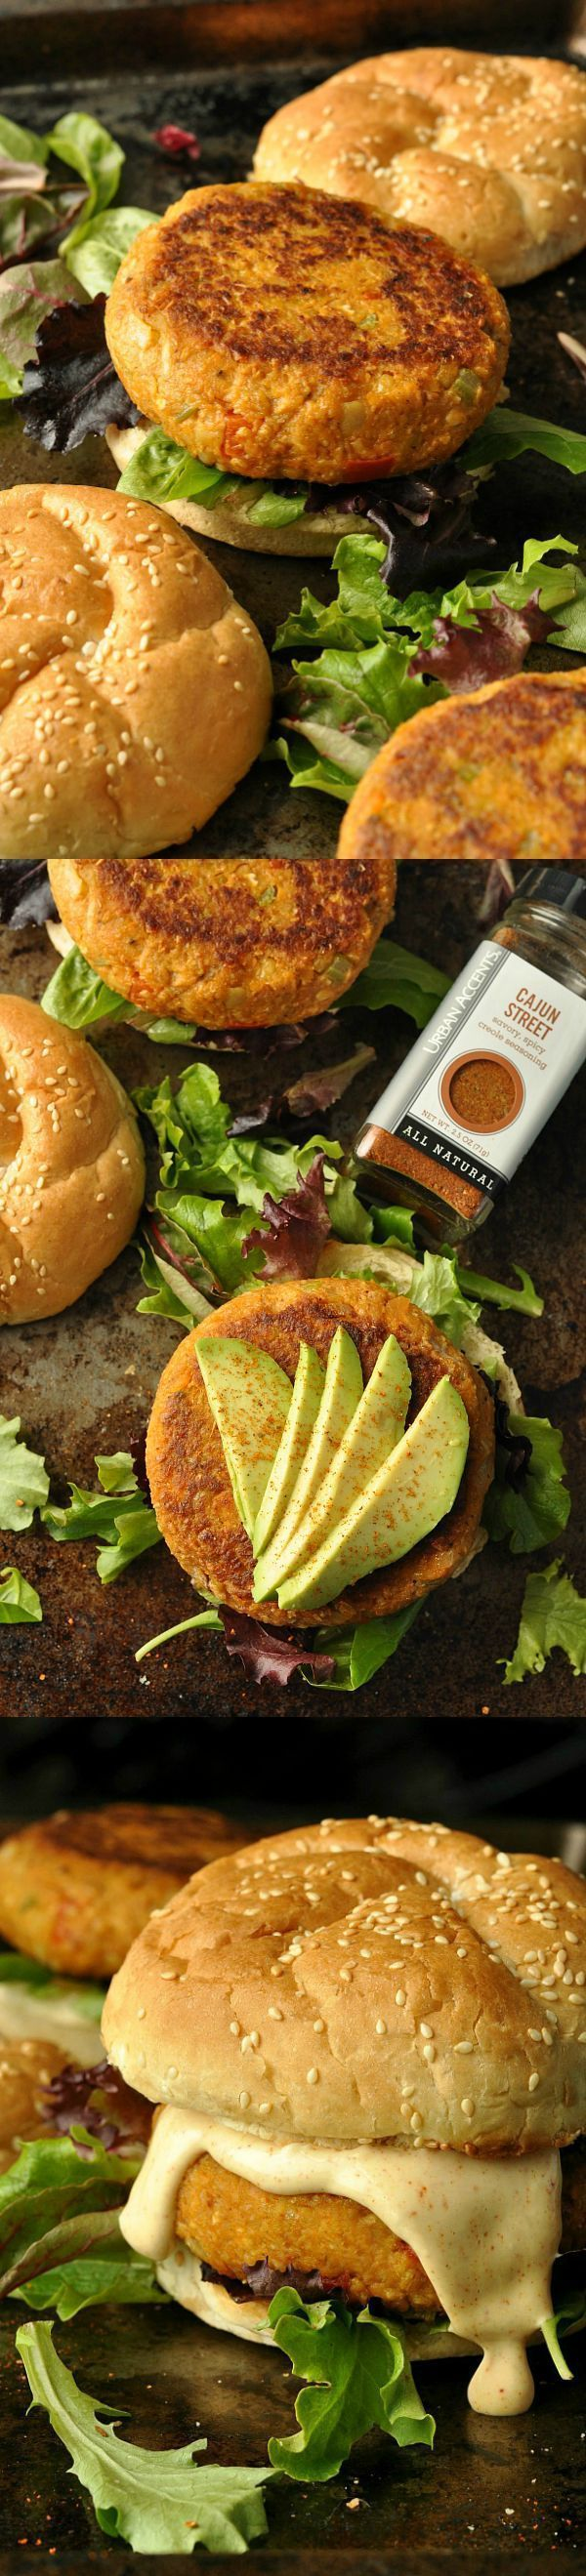 Cajun Chickpea and Sweet Potato Veggie Burgers :: These gluten-free vegan burgers are absolutely awesome!